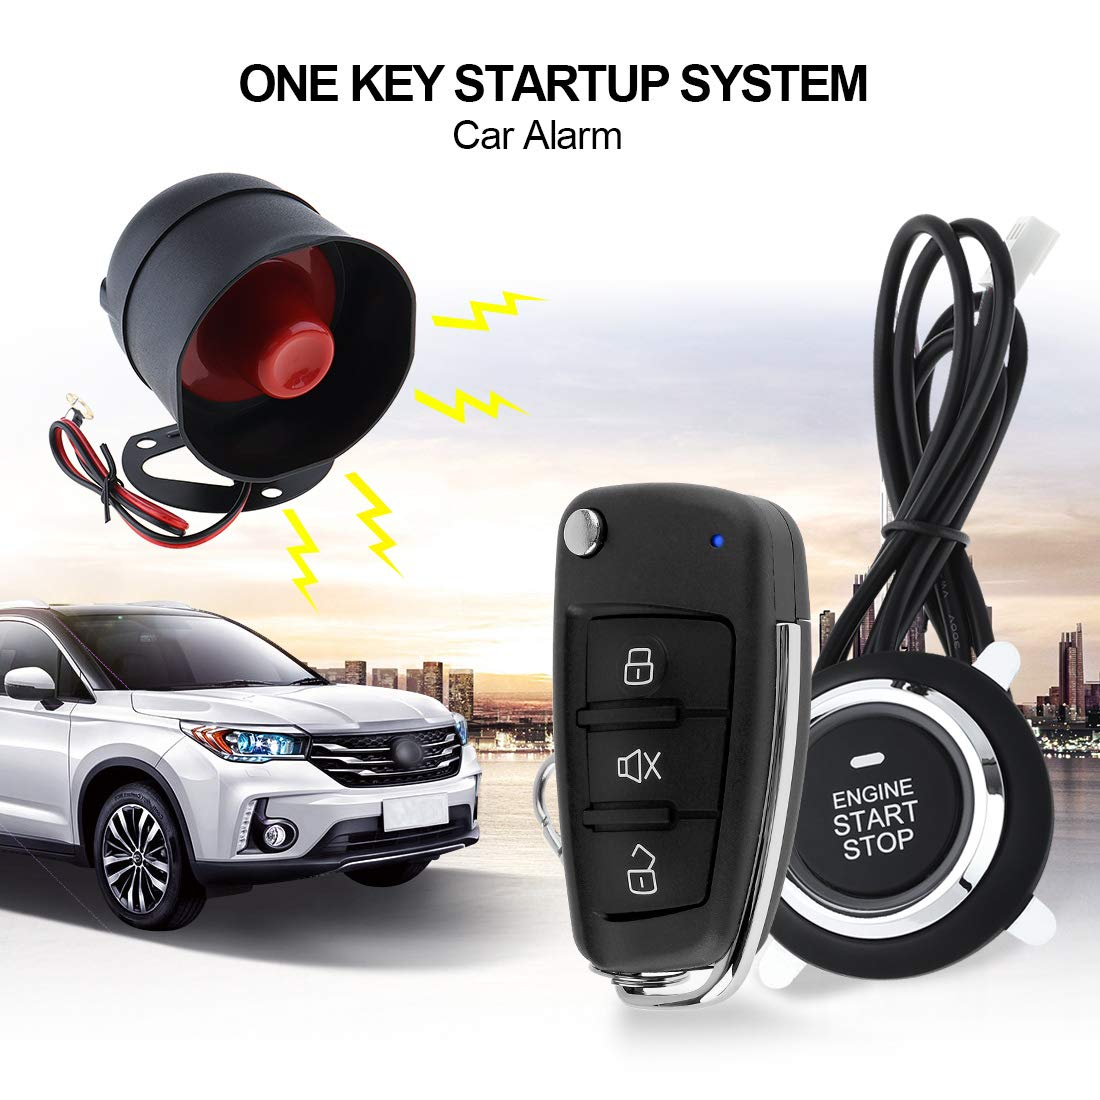 ePathChina Universal Car Alarm System Remote Start Stop Engine System with Auto Central Lock and Keyless Entry 5A with Key 5